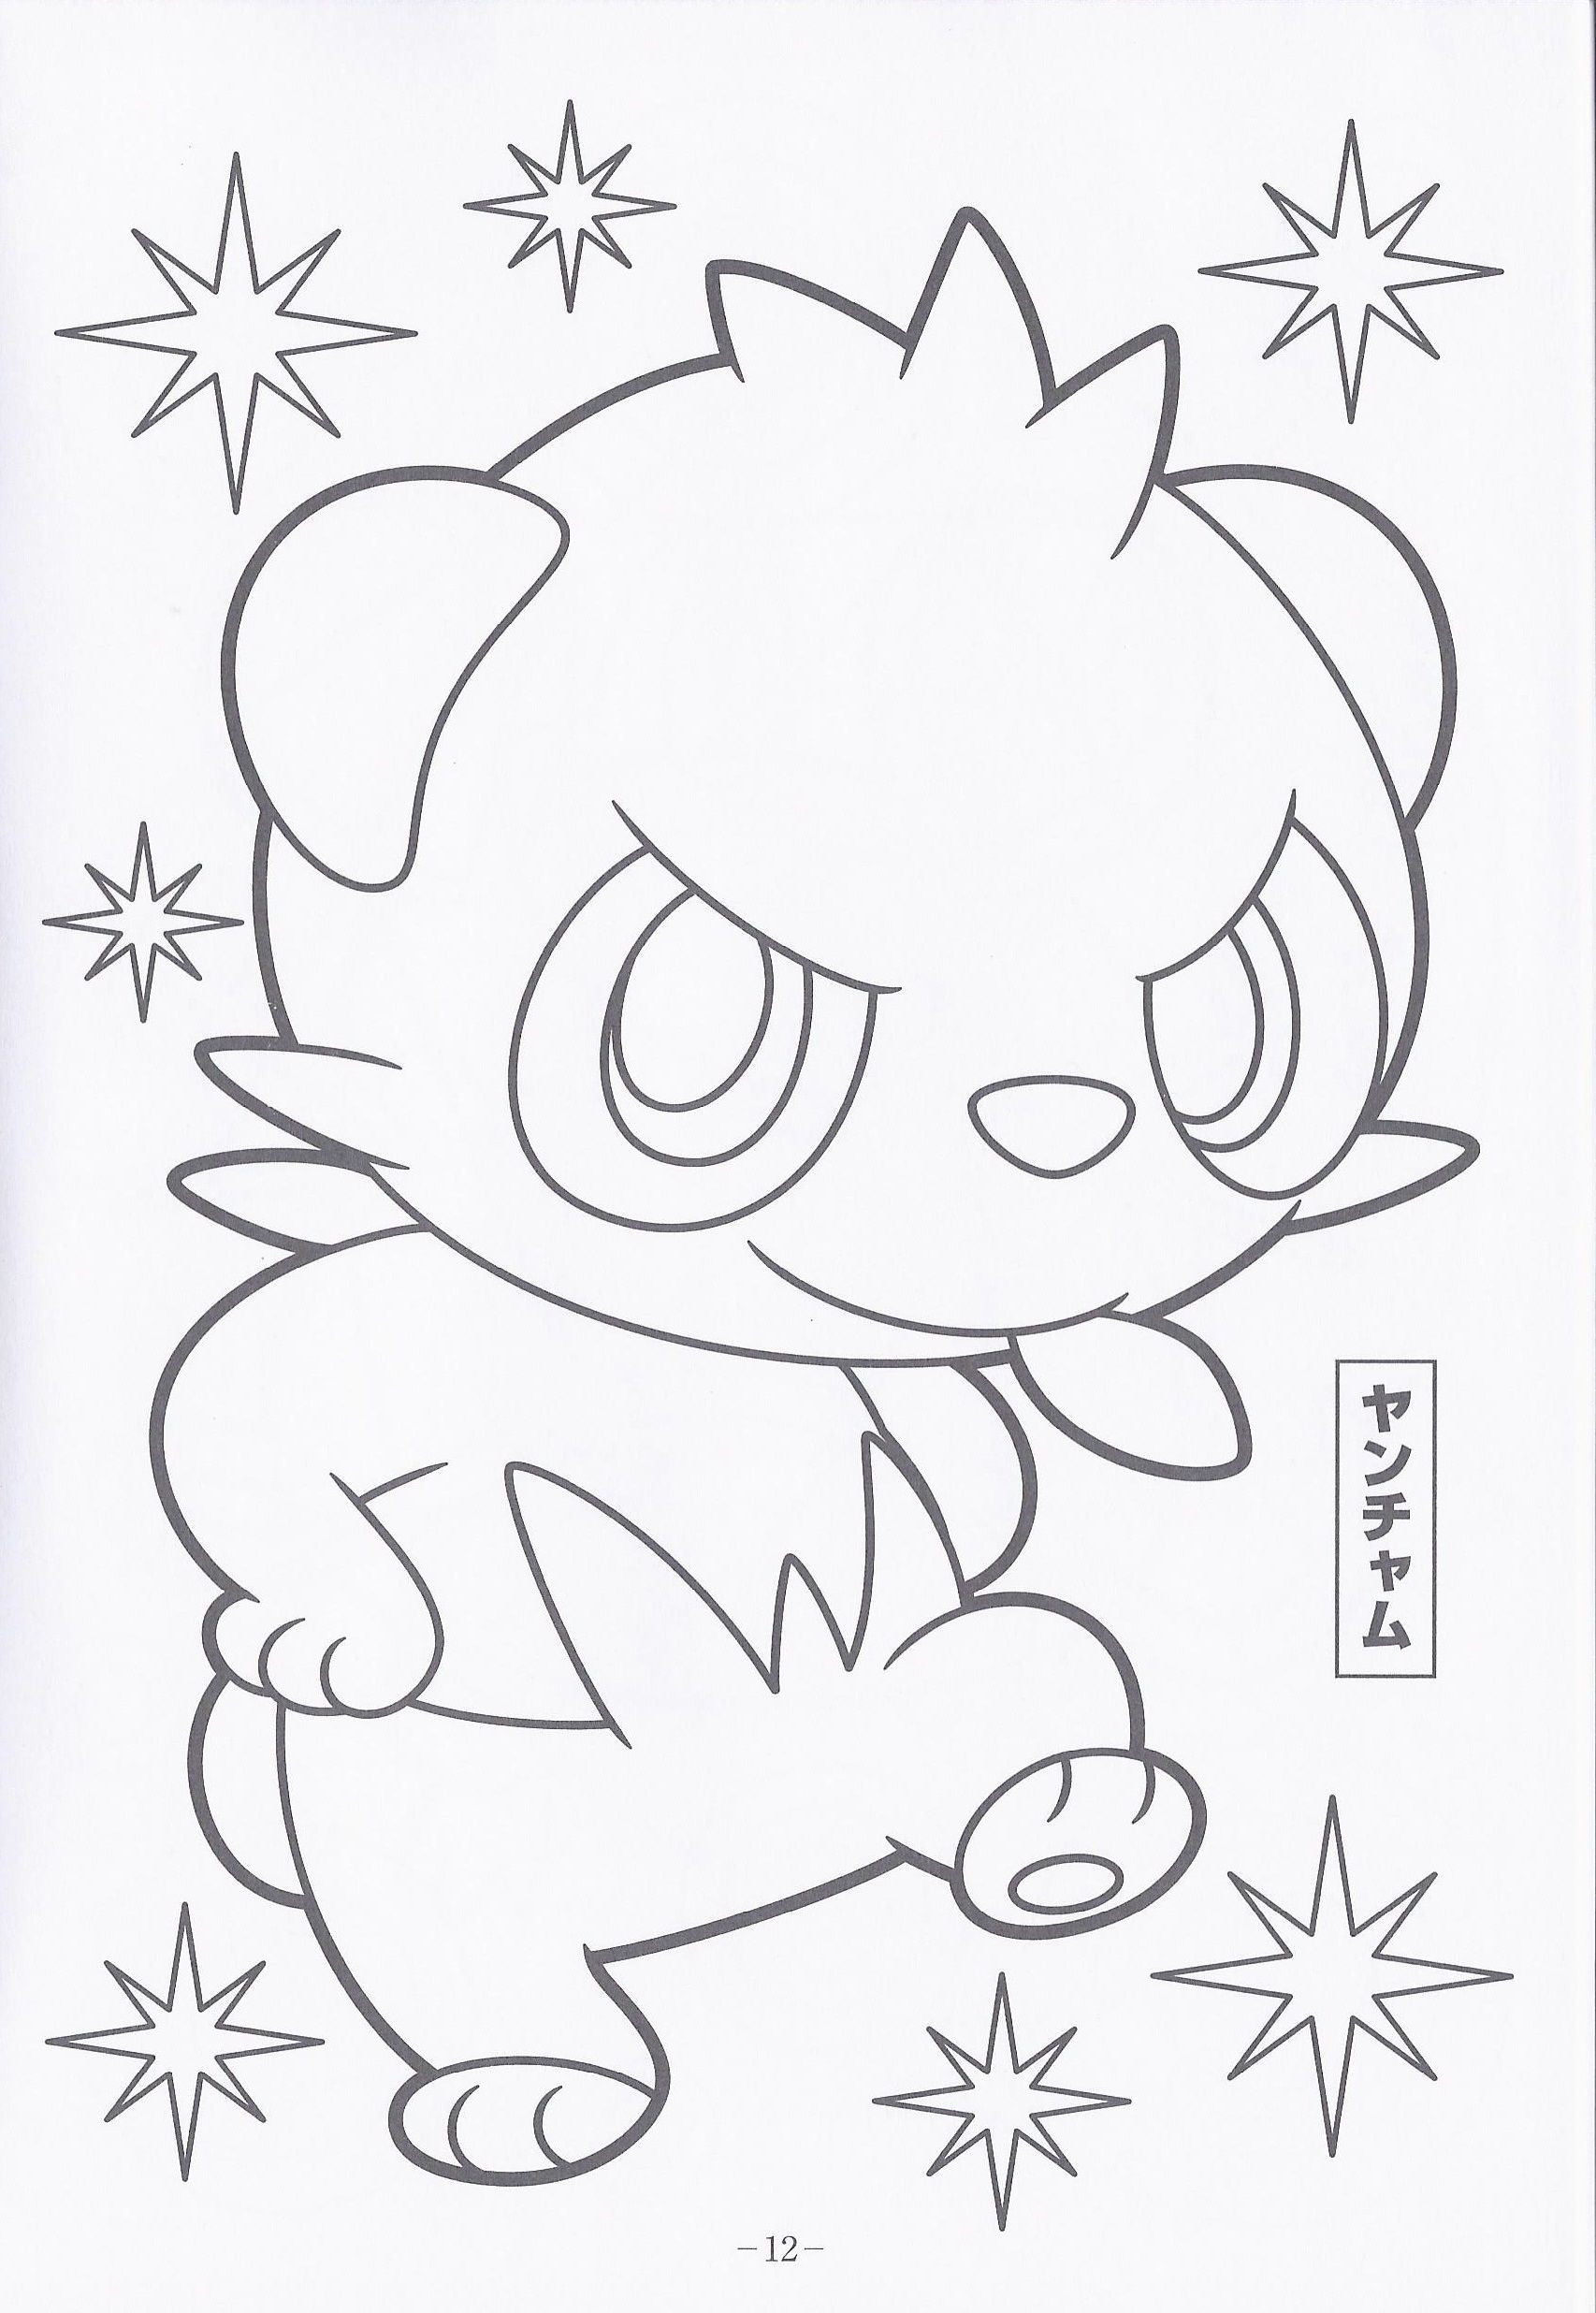 Pin By Leia Bess On Color Pokemon Coloring B W Line Art Pages Pokemon Coloring Pages Pokemon Coloring Coloring Books